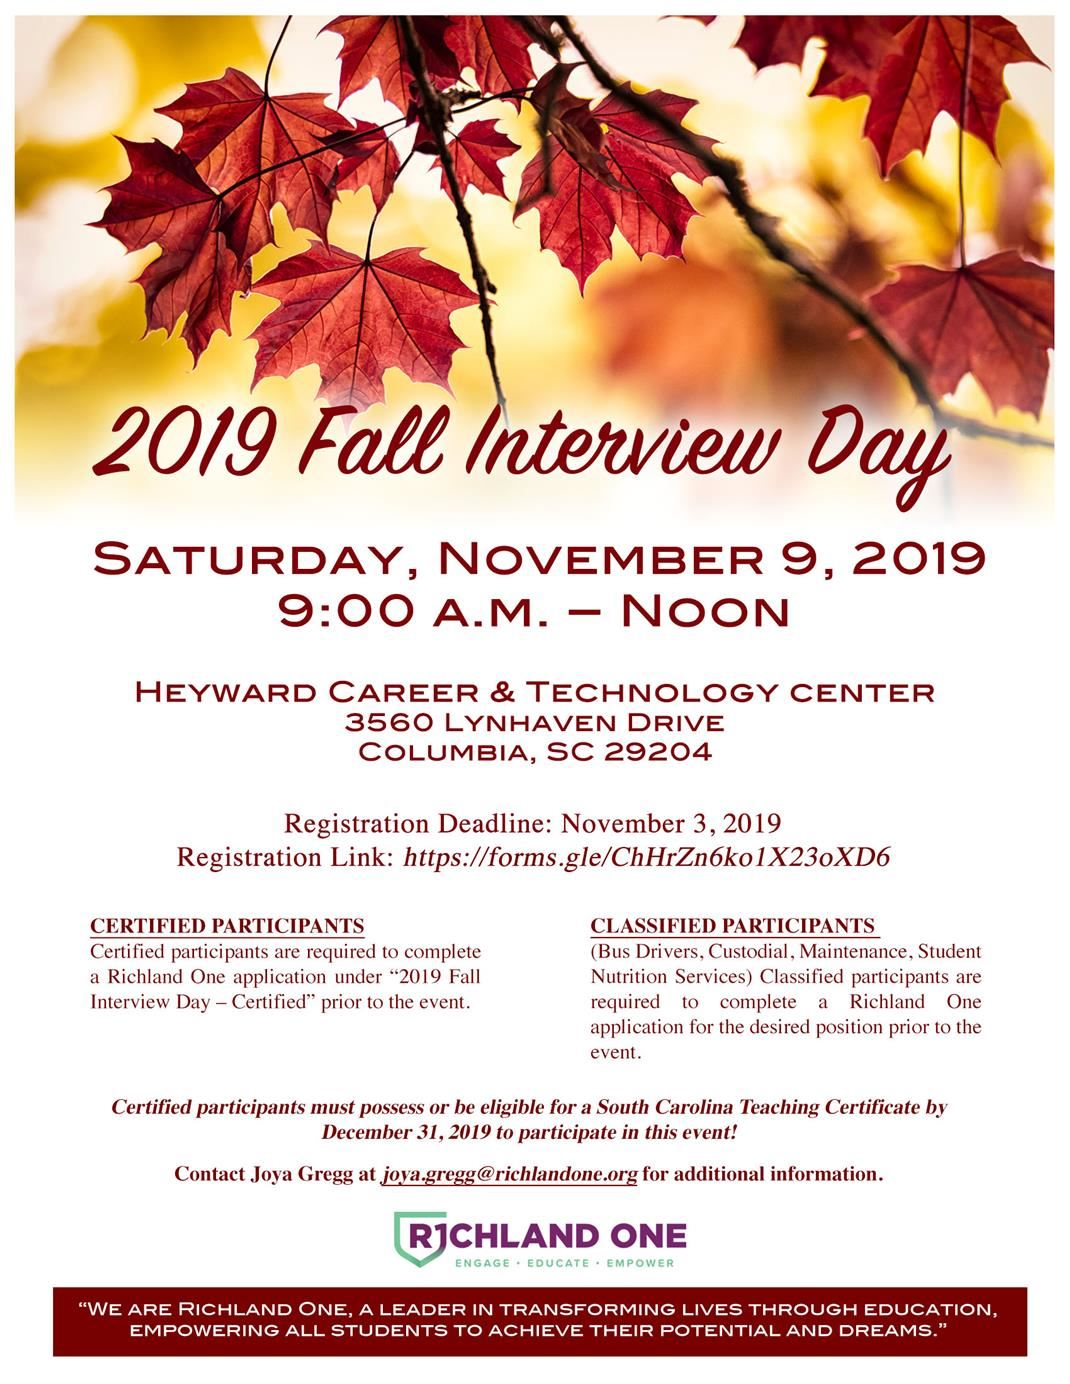 Fall Interview Day